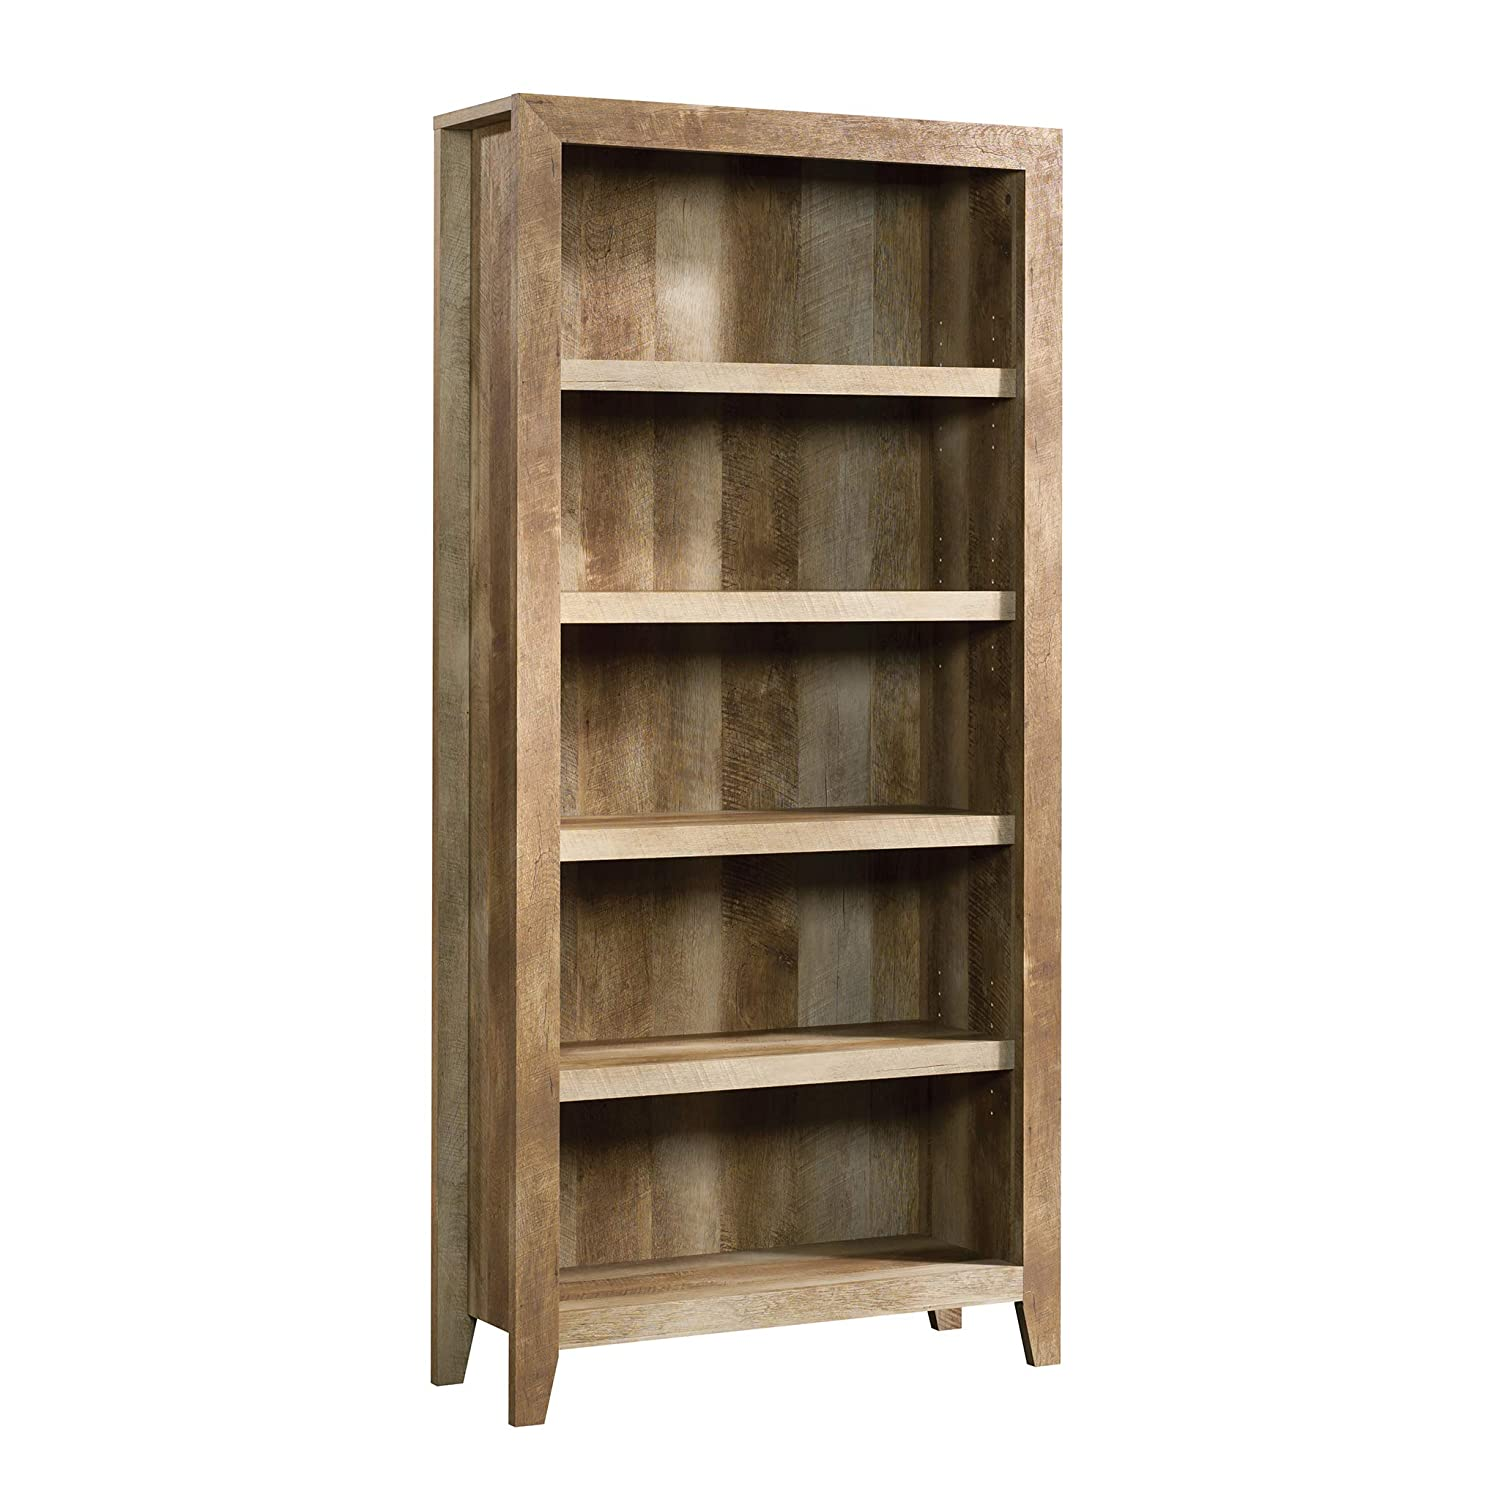 "Sauder 418546 Dakota Pass 5-Shelf Bookcase, L: 33.78"" x W: 12.52"" x H: 71.1, Craftsman Oak finish"